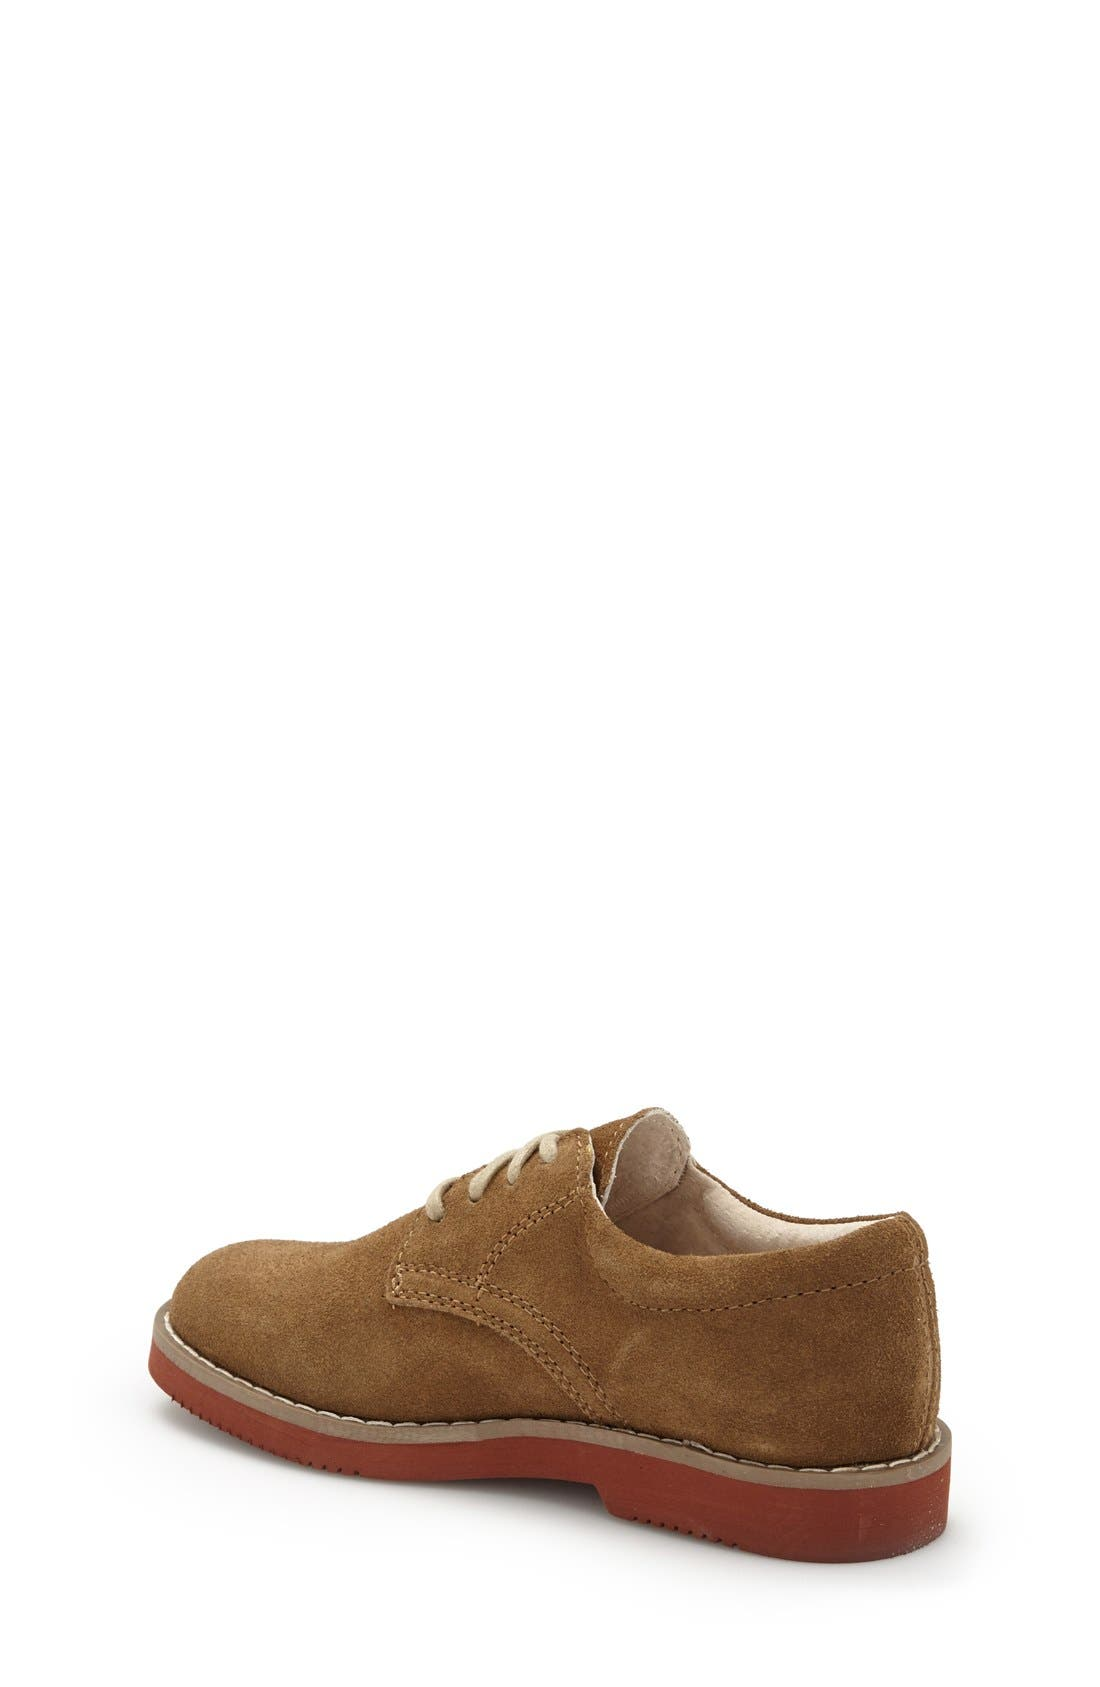 Alternate Image 2  - Tucker + Tate by Nordstrom 'Cameron' Oxford (Walker, Toddler, Little Kid & Big Kid)